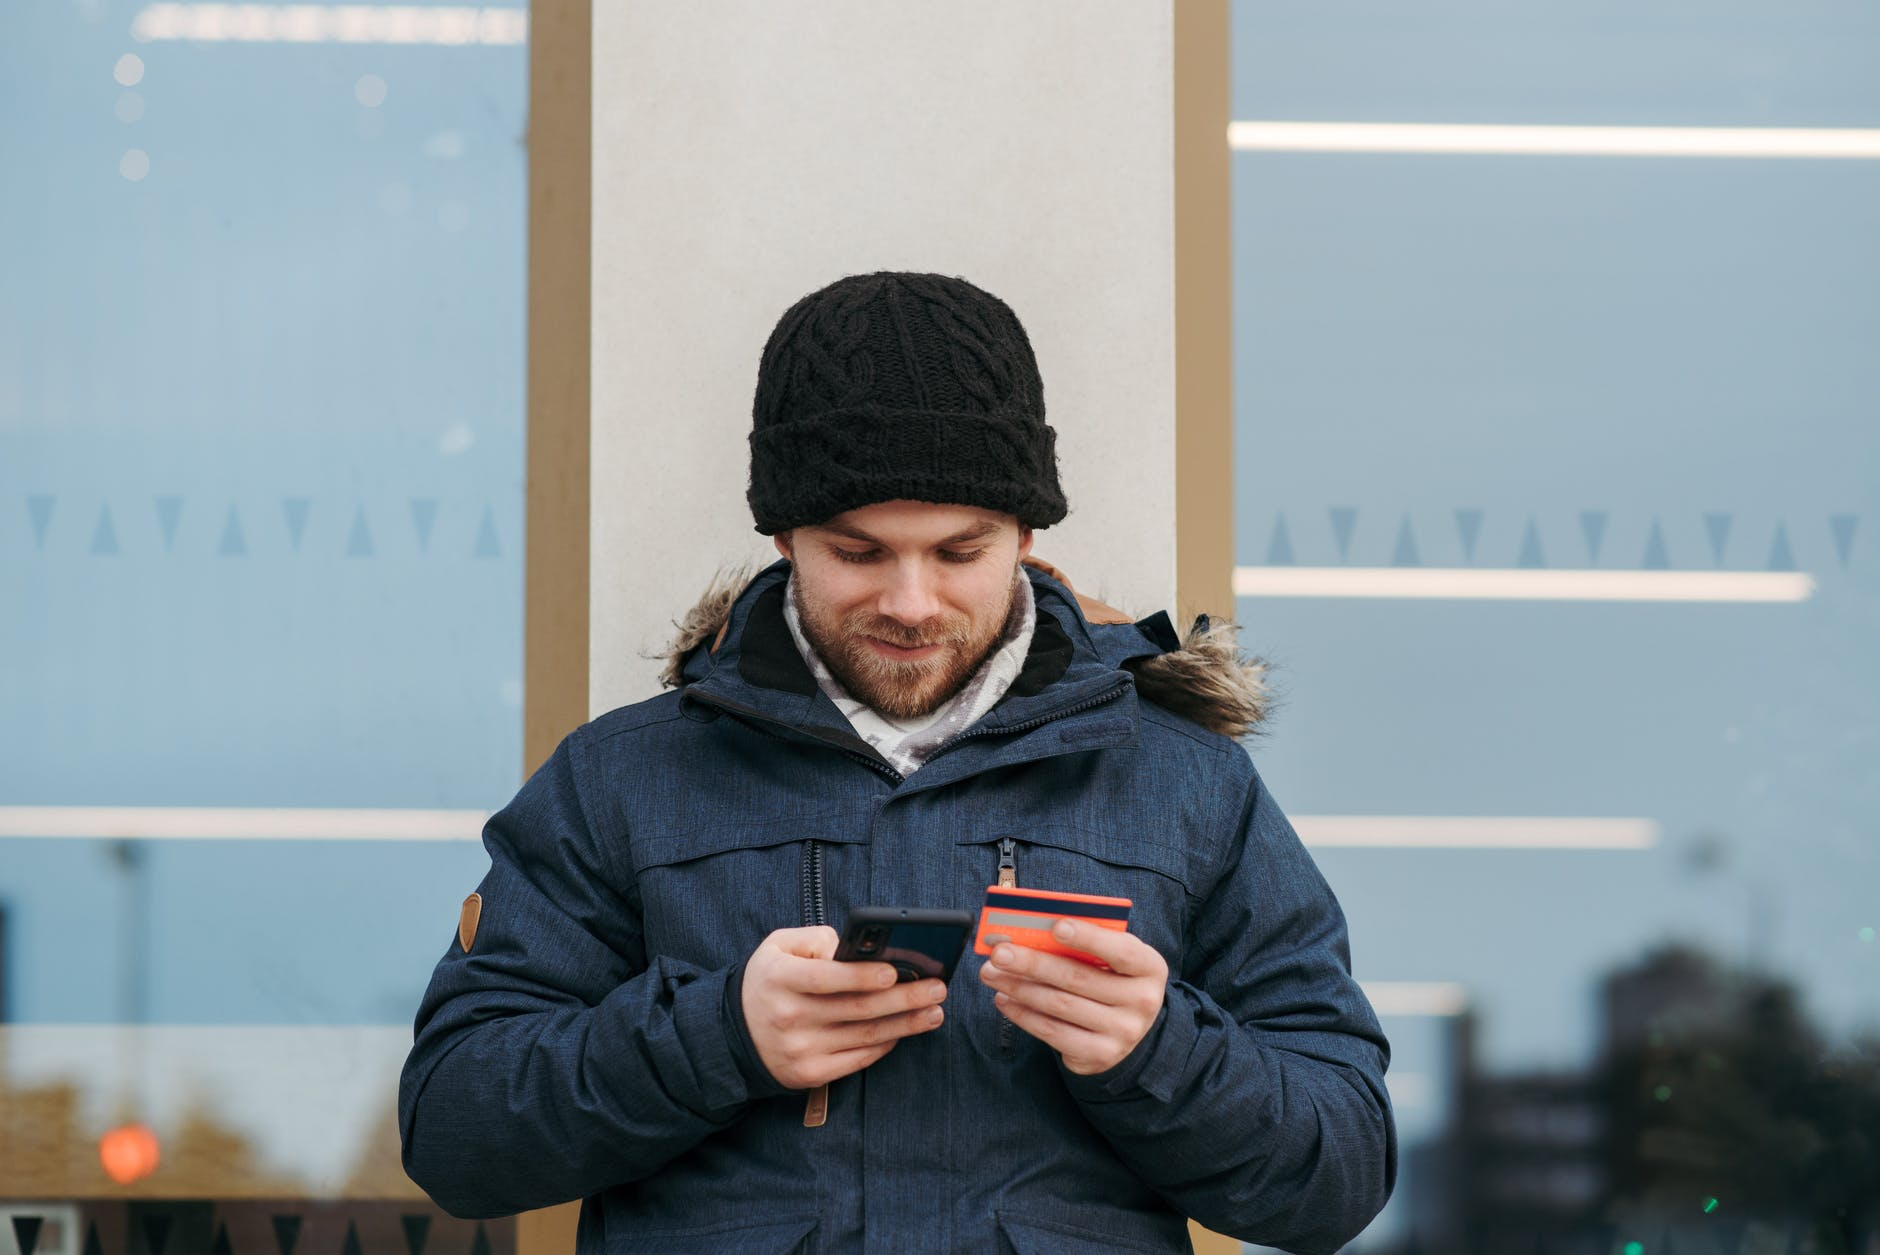 cheerful man entering details of credit card on smartphone on street